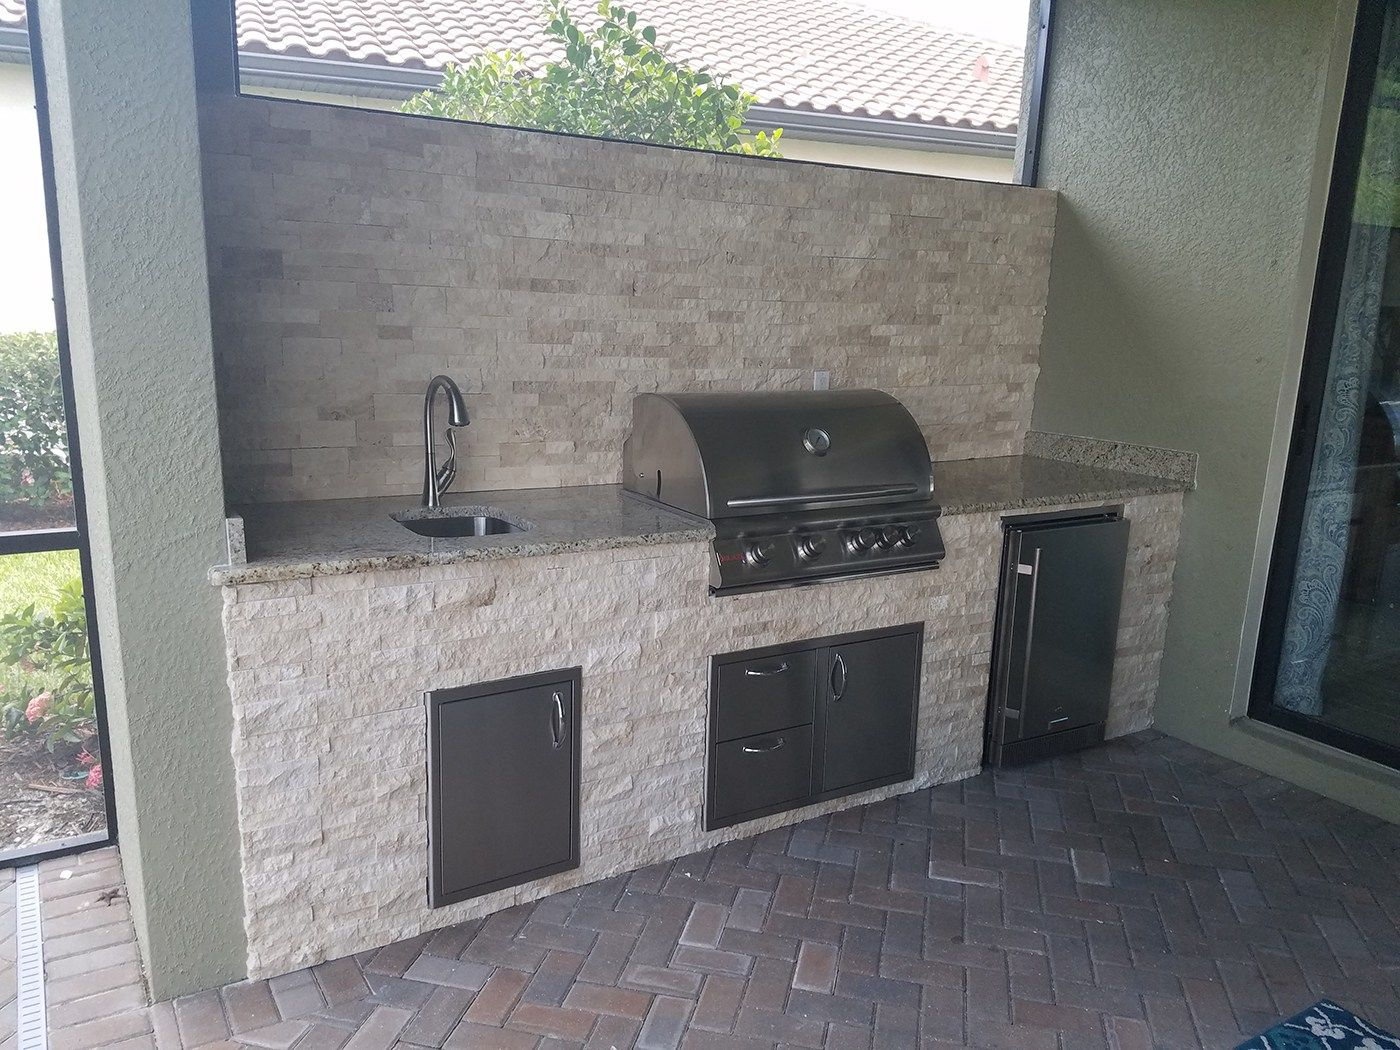 Under The Lanai Outdoor Kitchen By Eok Elegant Outdoor Kitchens